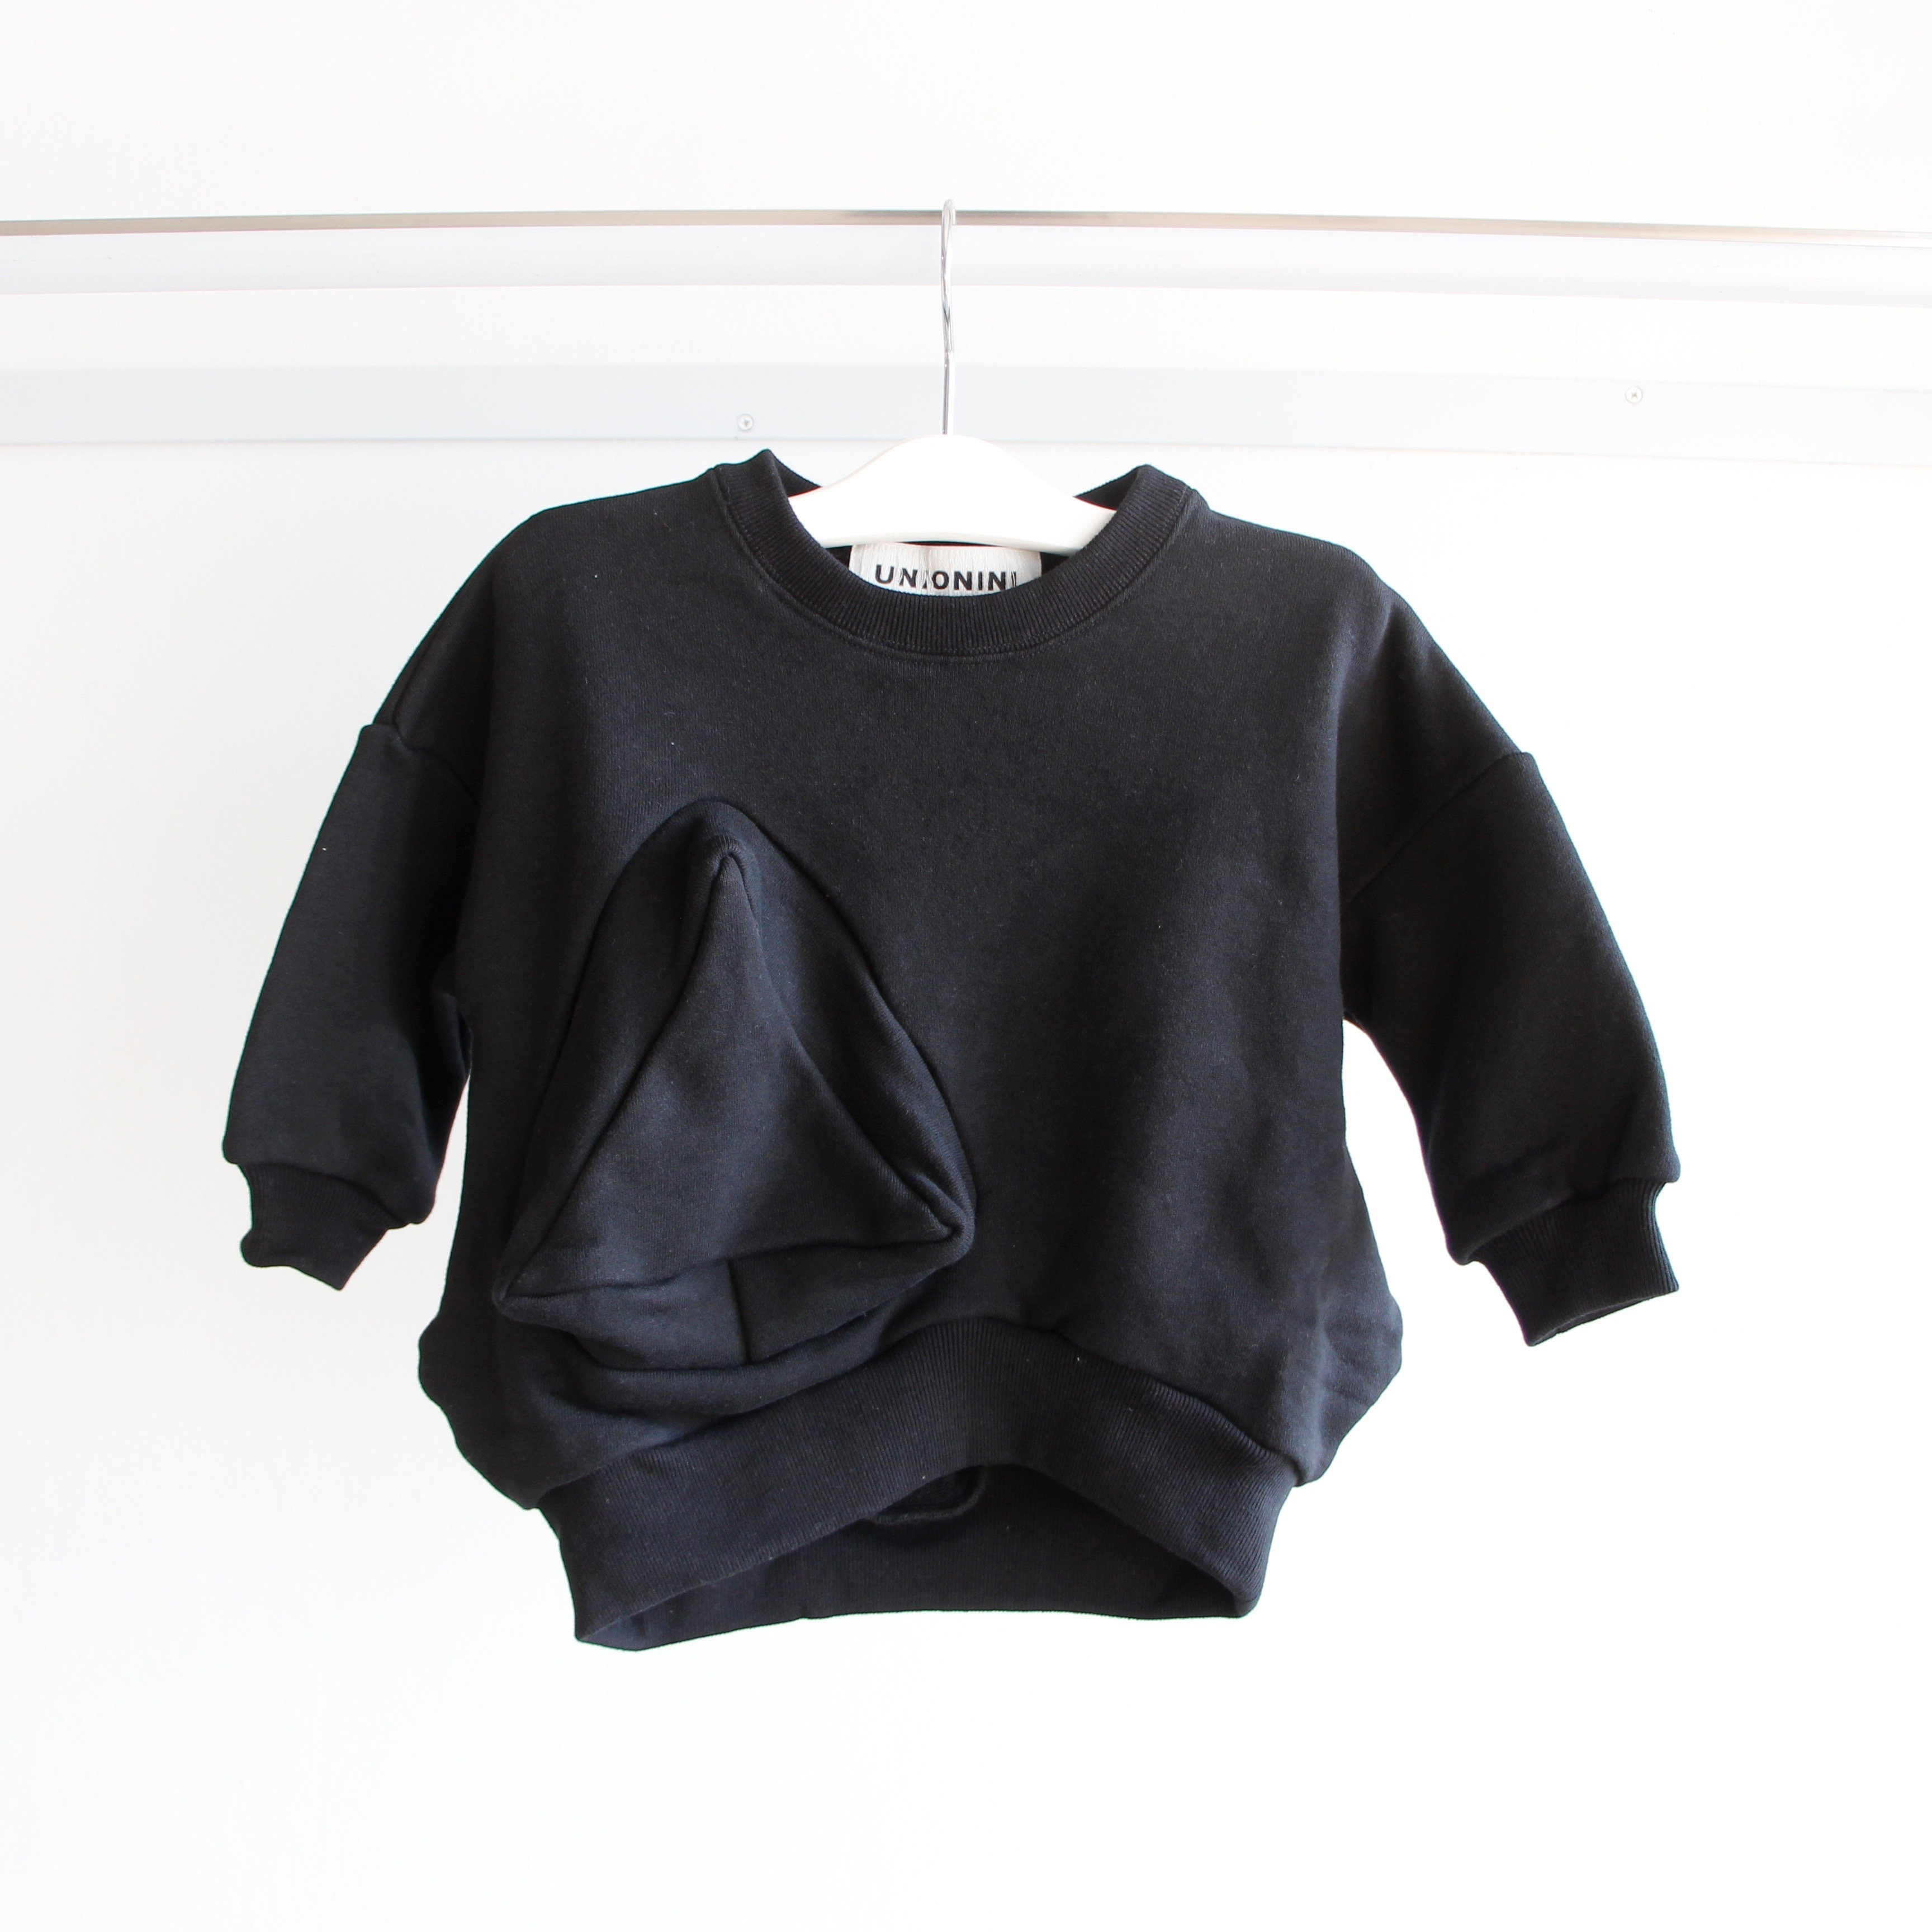 《UNIONINI 2019AW》◯△ sweat shirt / black / 1-10Y